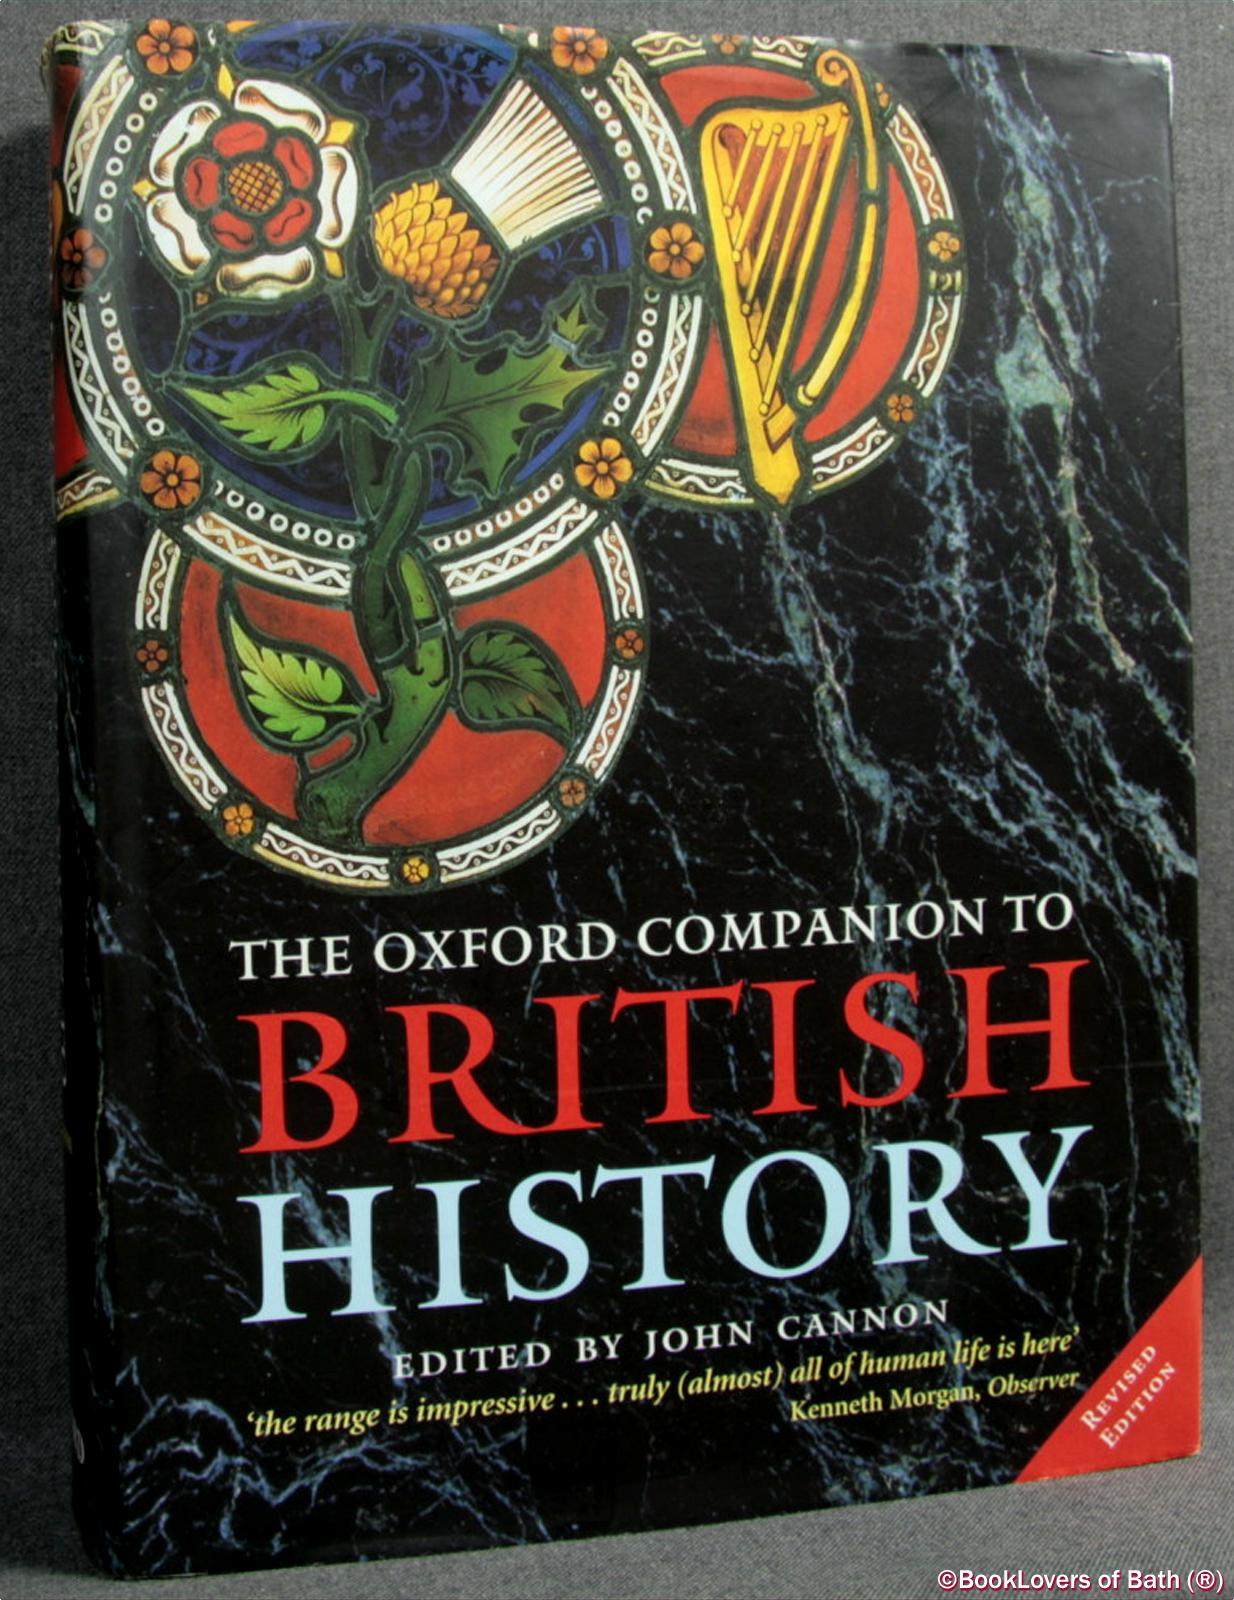 The Oxford Companion to British History - Edited by John Cannon